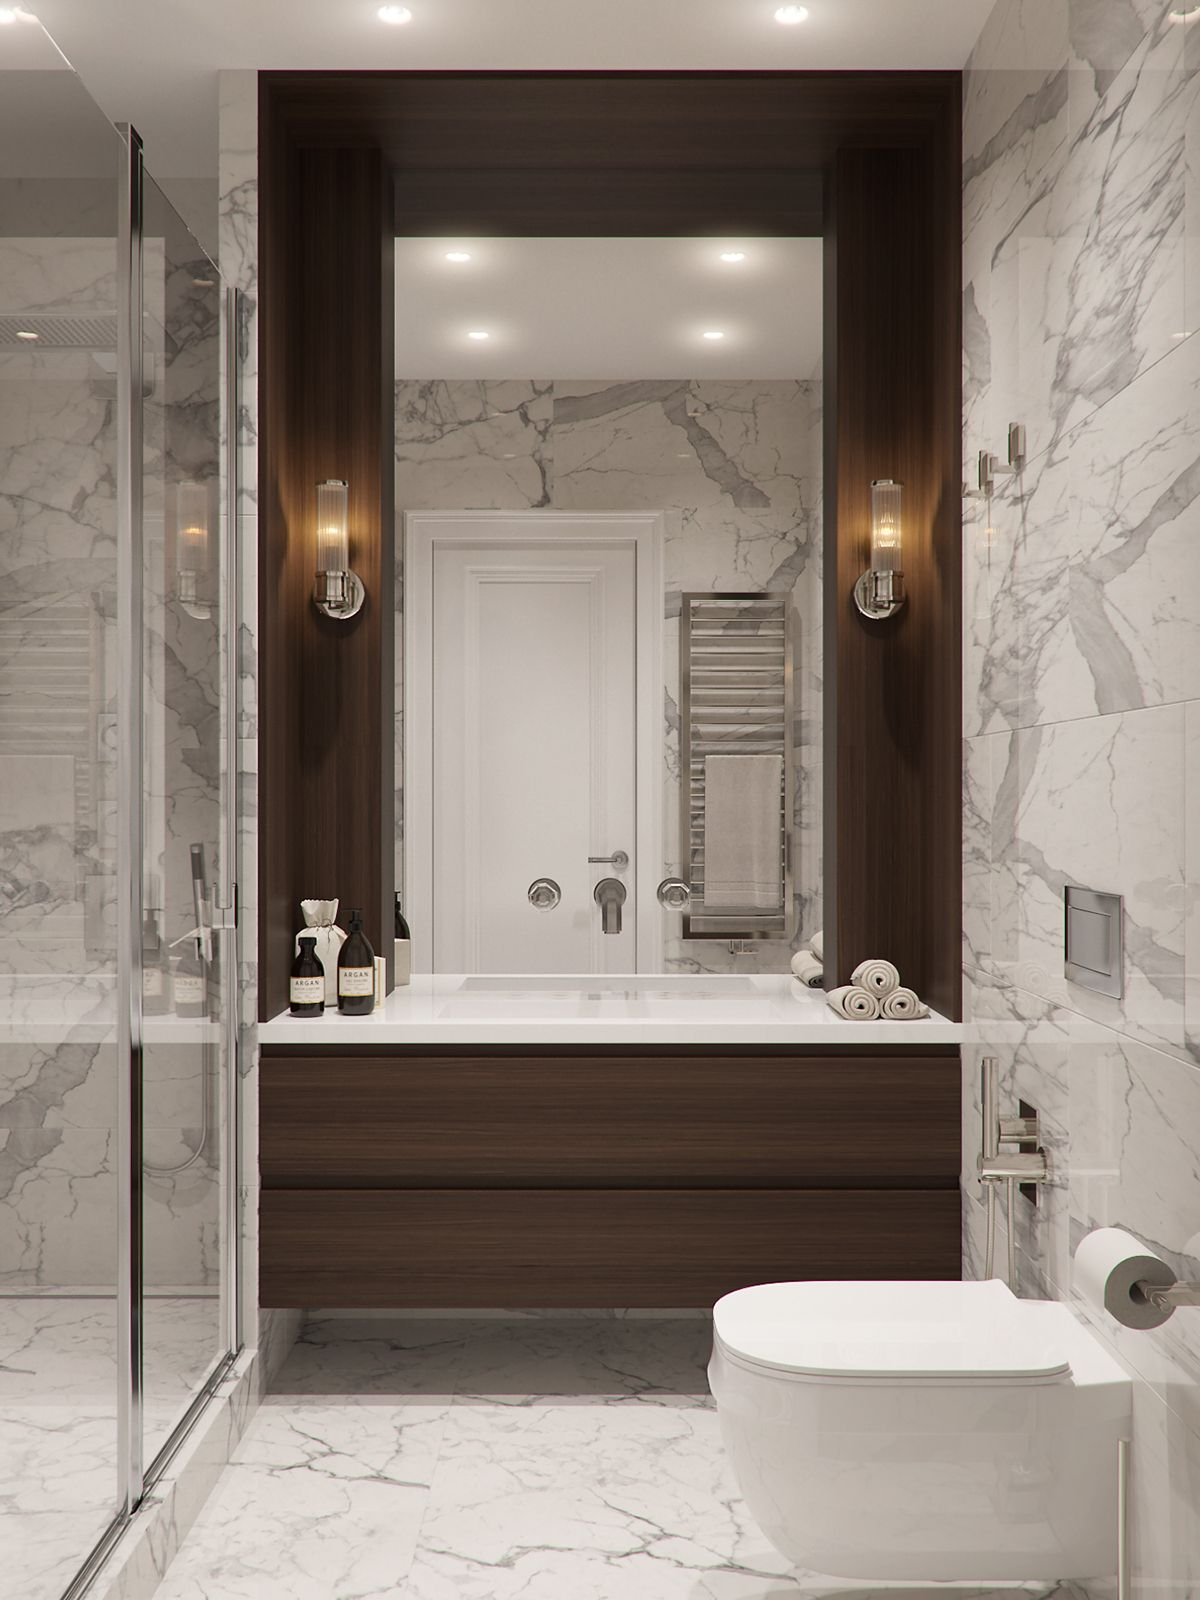 Design And Visualization Of Apartment In A Classic Style In St Petersburg Idee Salle De Bain Salle De Bains Moderne Salle De Bain Design